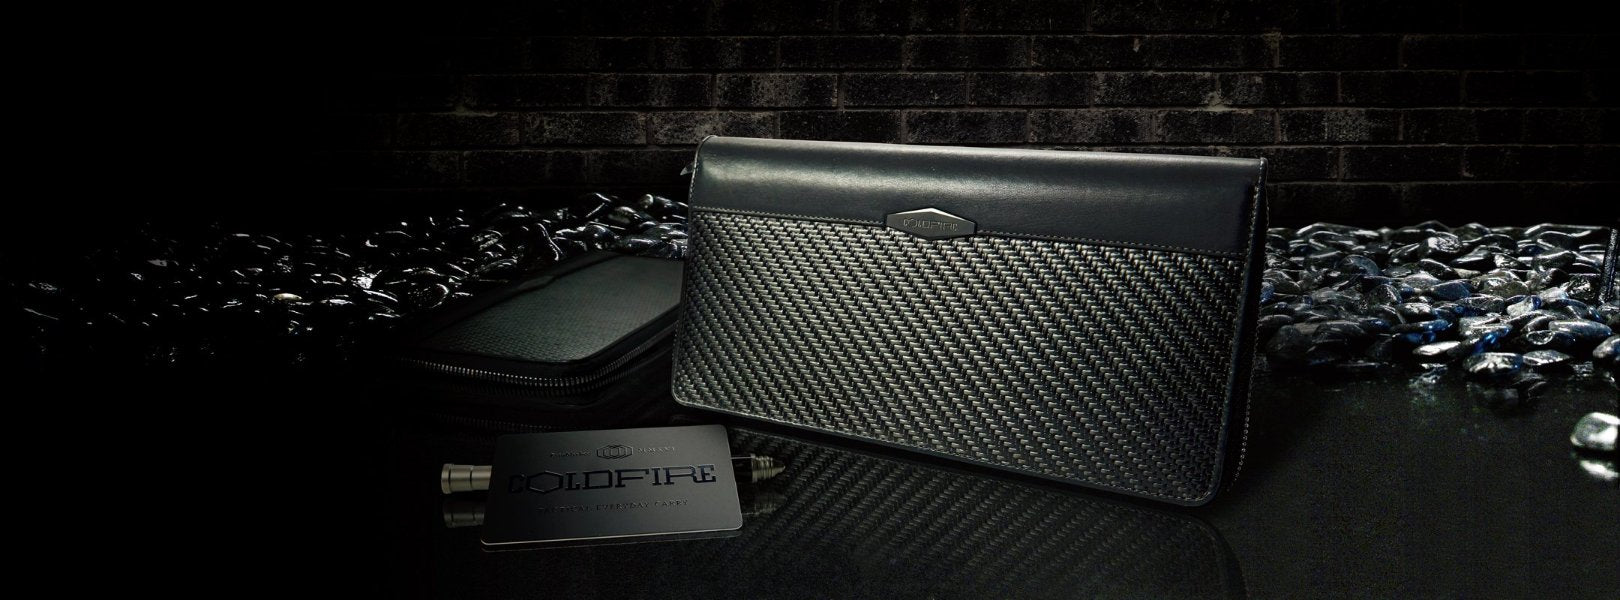 everyday carry EDC, carbon fiber wallets, slim wallets, tactical wallets, travel wallets, passport holders, bags, gt rebel, coldfire